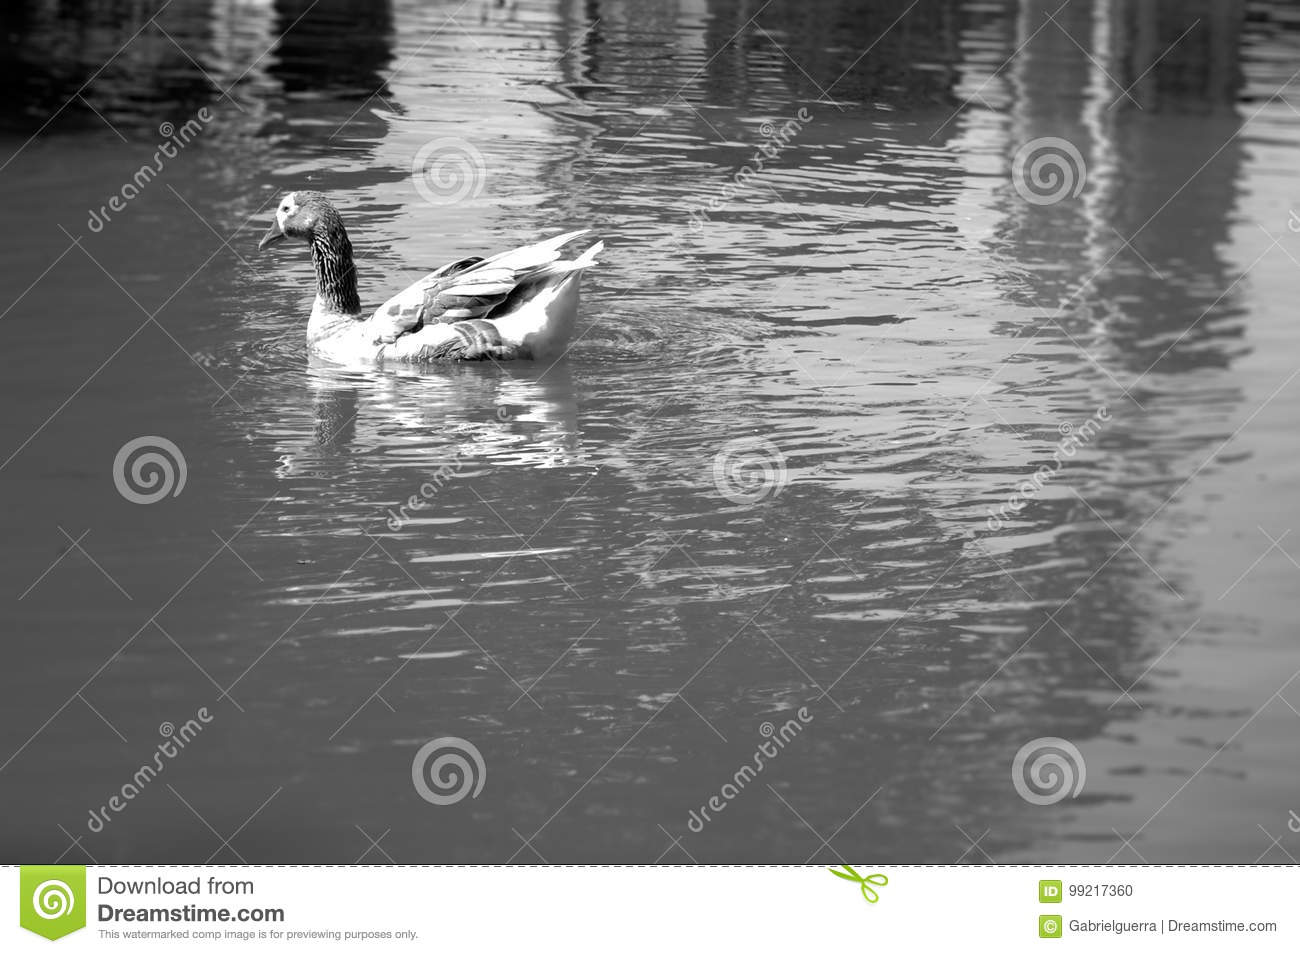 Swimming duck in a calm lake in black and white